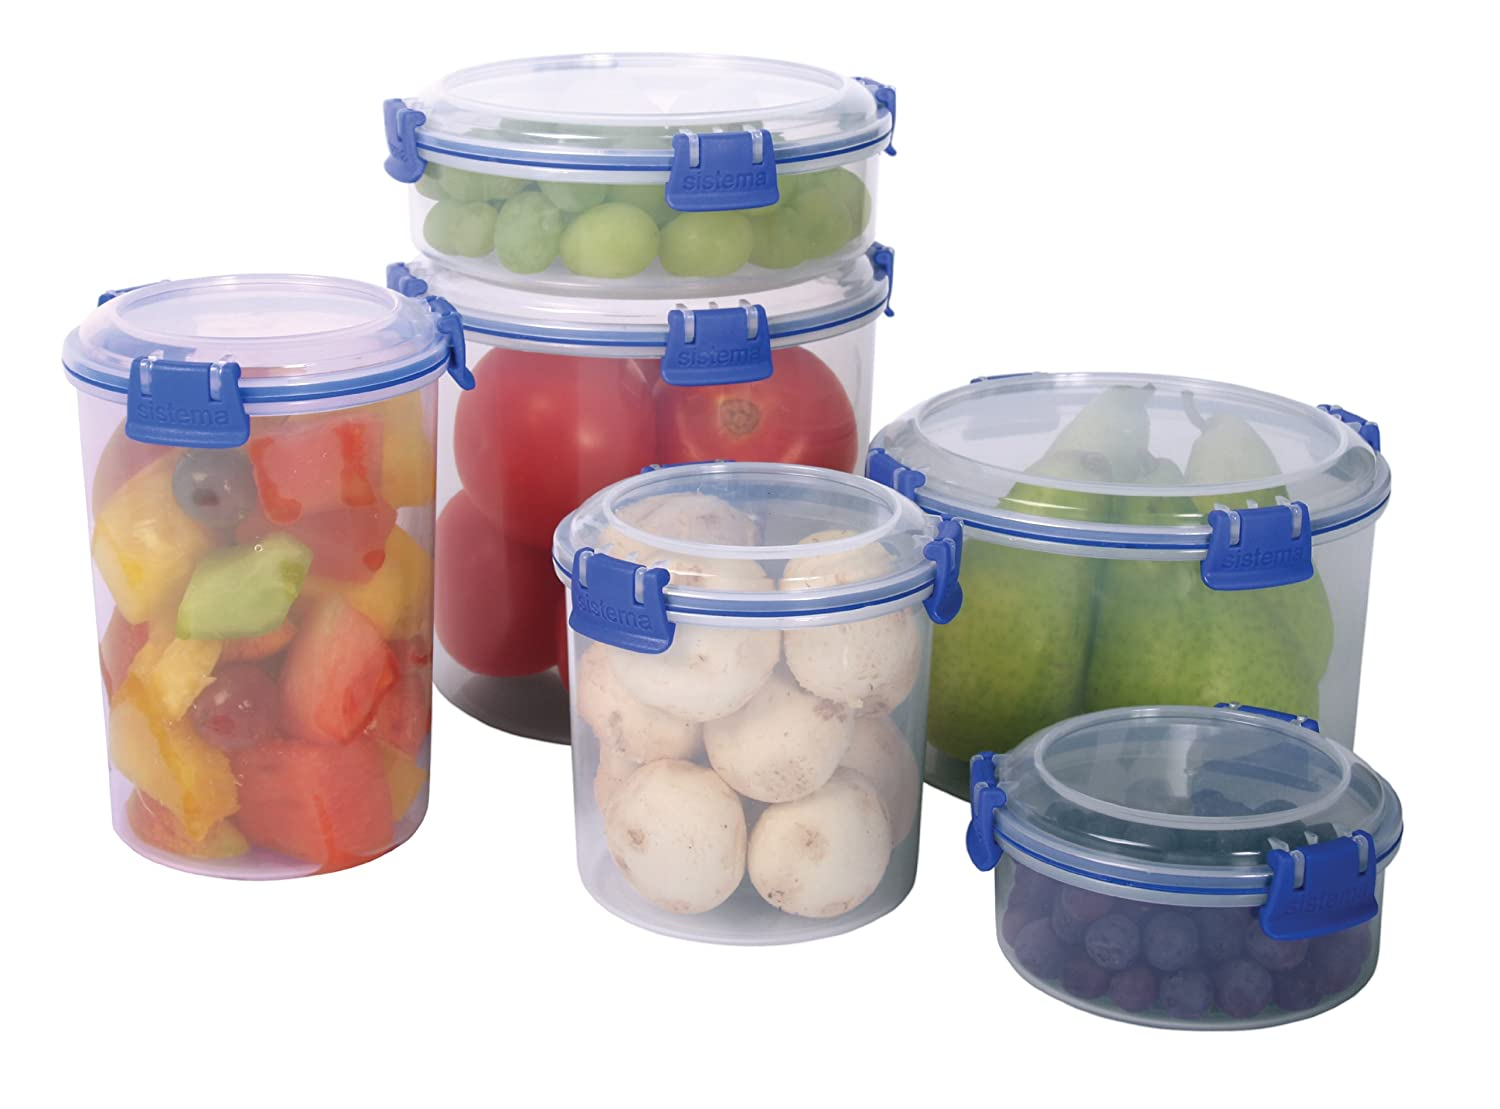 Amazon.com Sistema Klip It Collection Round Food Storage Container with Strainer 33.8 Ounce/4.2 Cup Food Savers Kitchen u0026 Dining  sc 1 st  Amazon.com & Amazon.com: Sistema Klip It Collection Round Food Storage Container ...